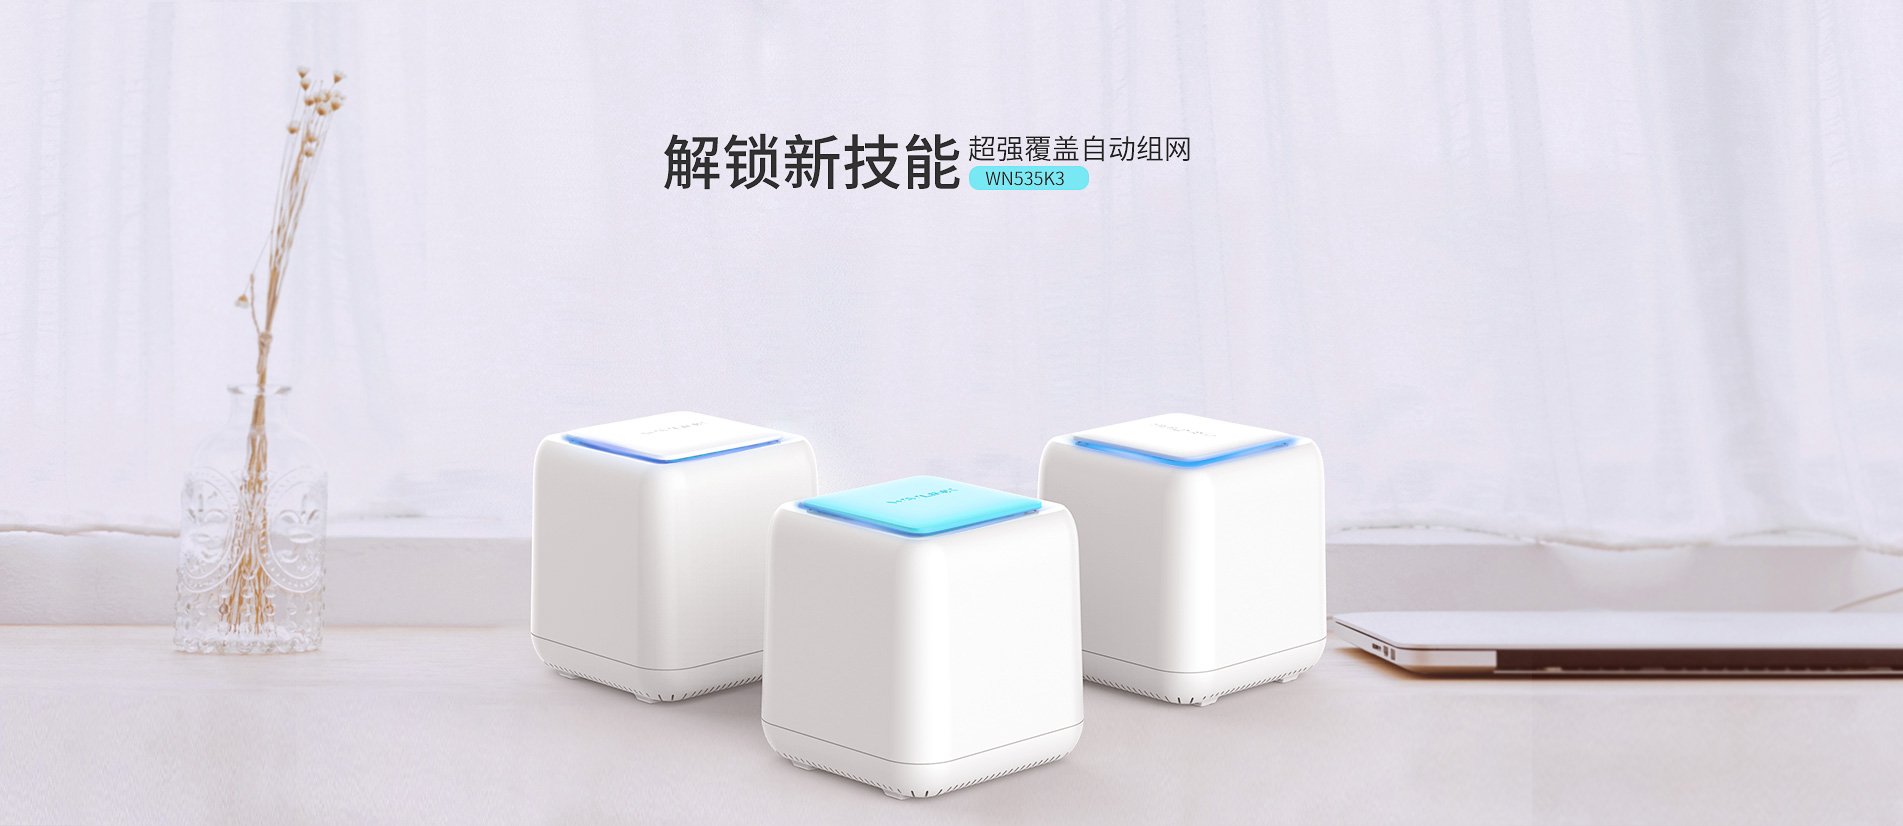 AC1200 Dual Band Smart WiFi Router 中文